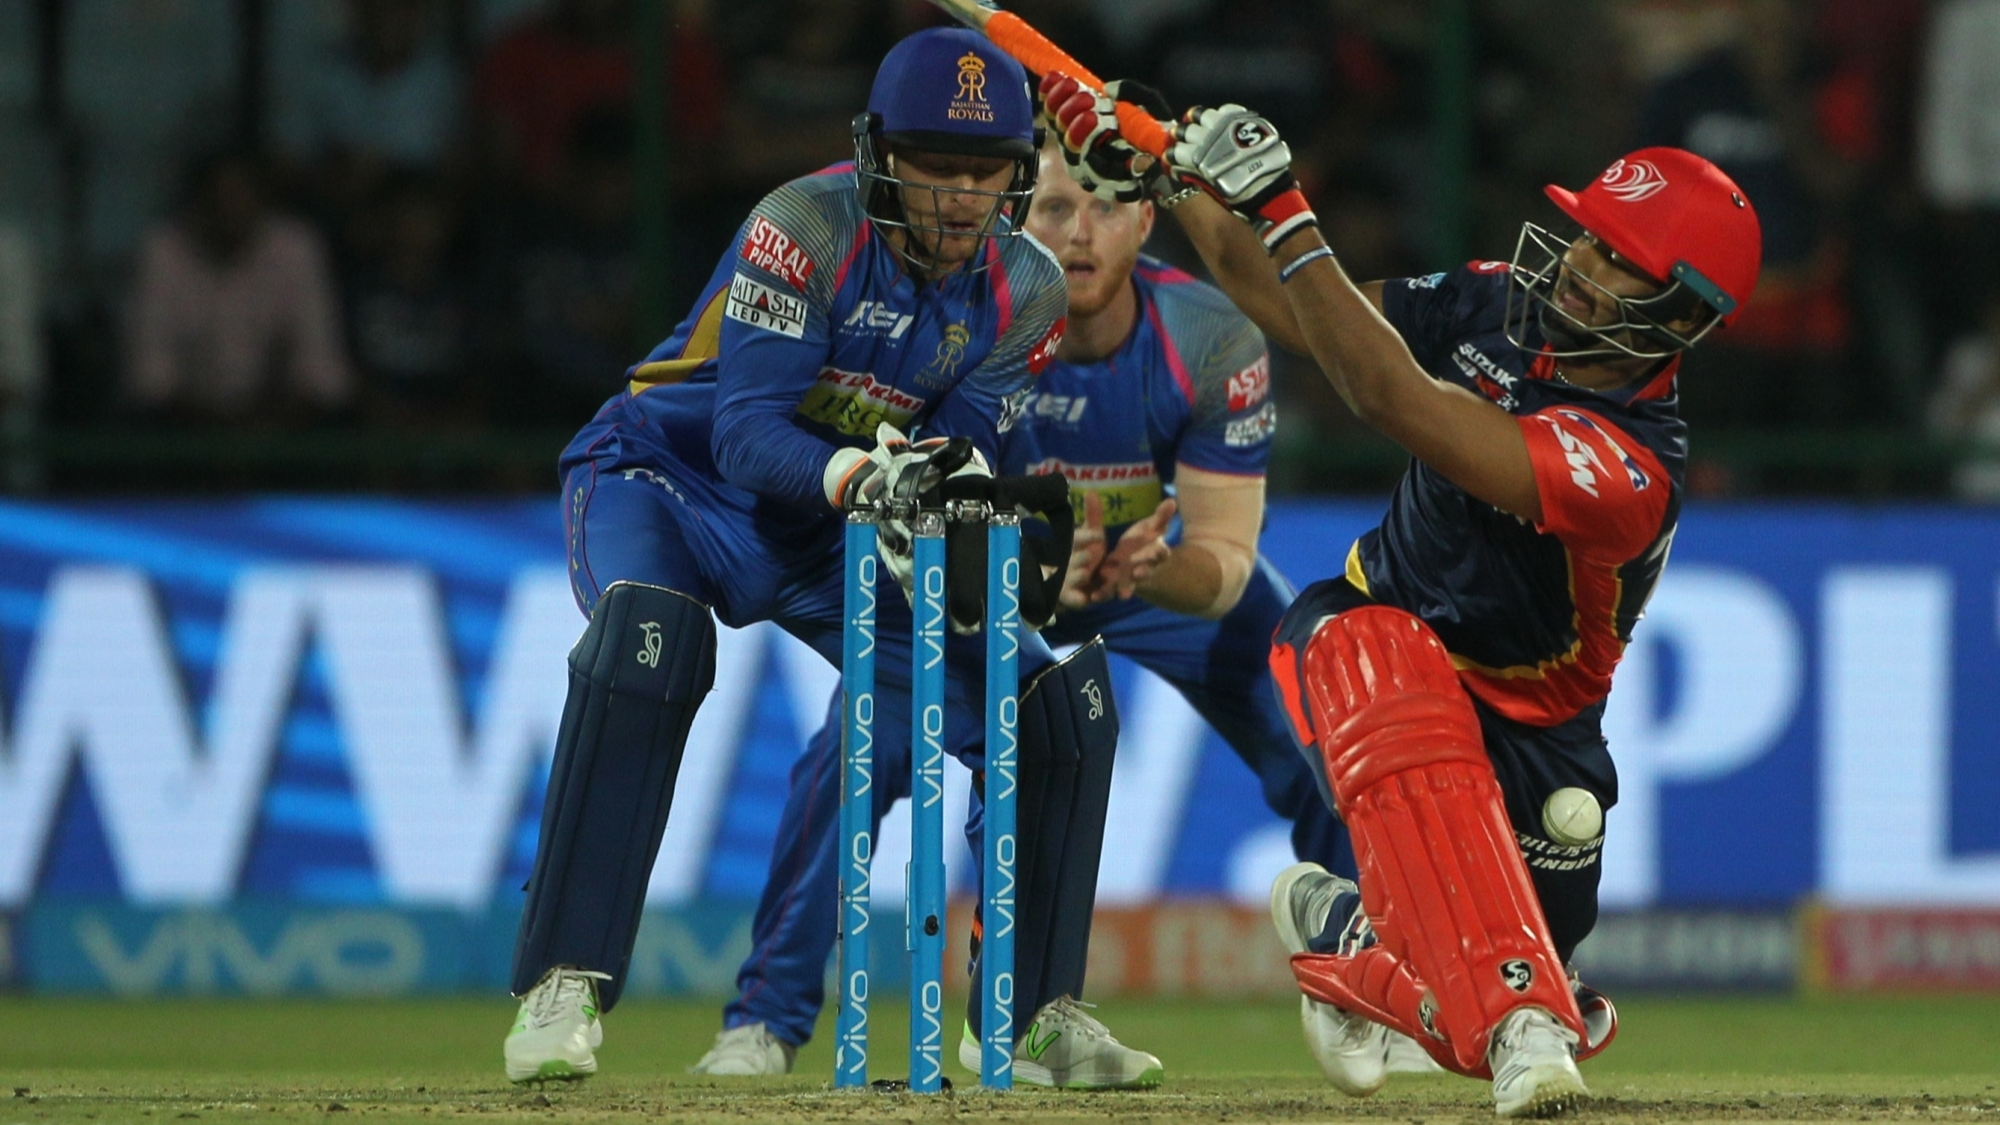 IPL 2018: Twitterati in awe as Pant, Iyer and Shaw demolish RR attack to score 196